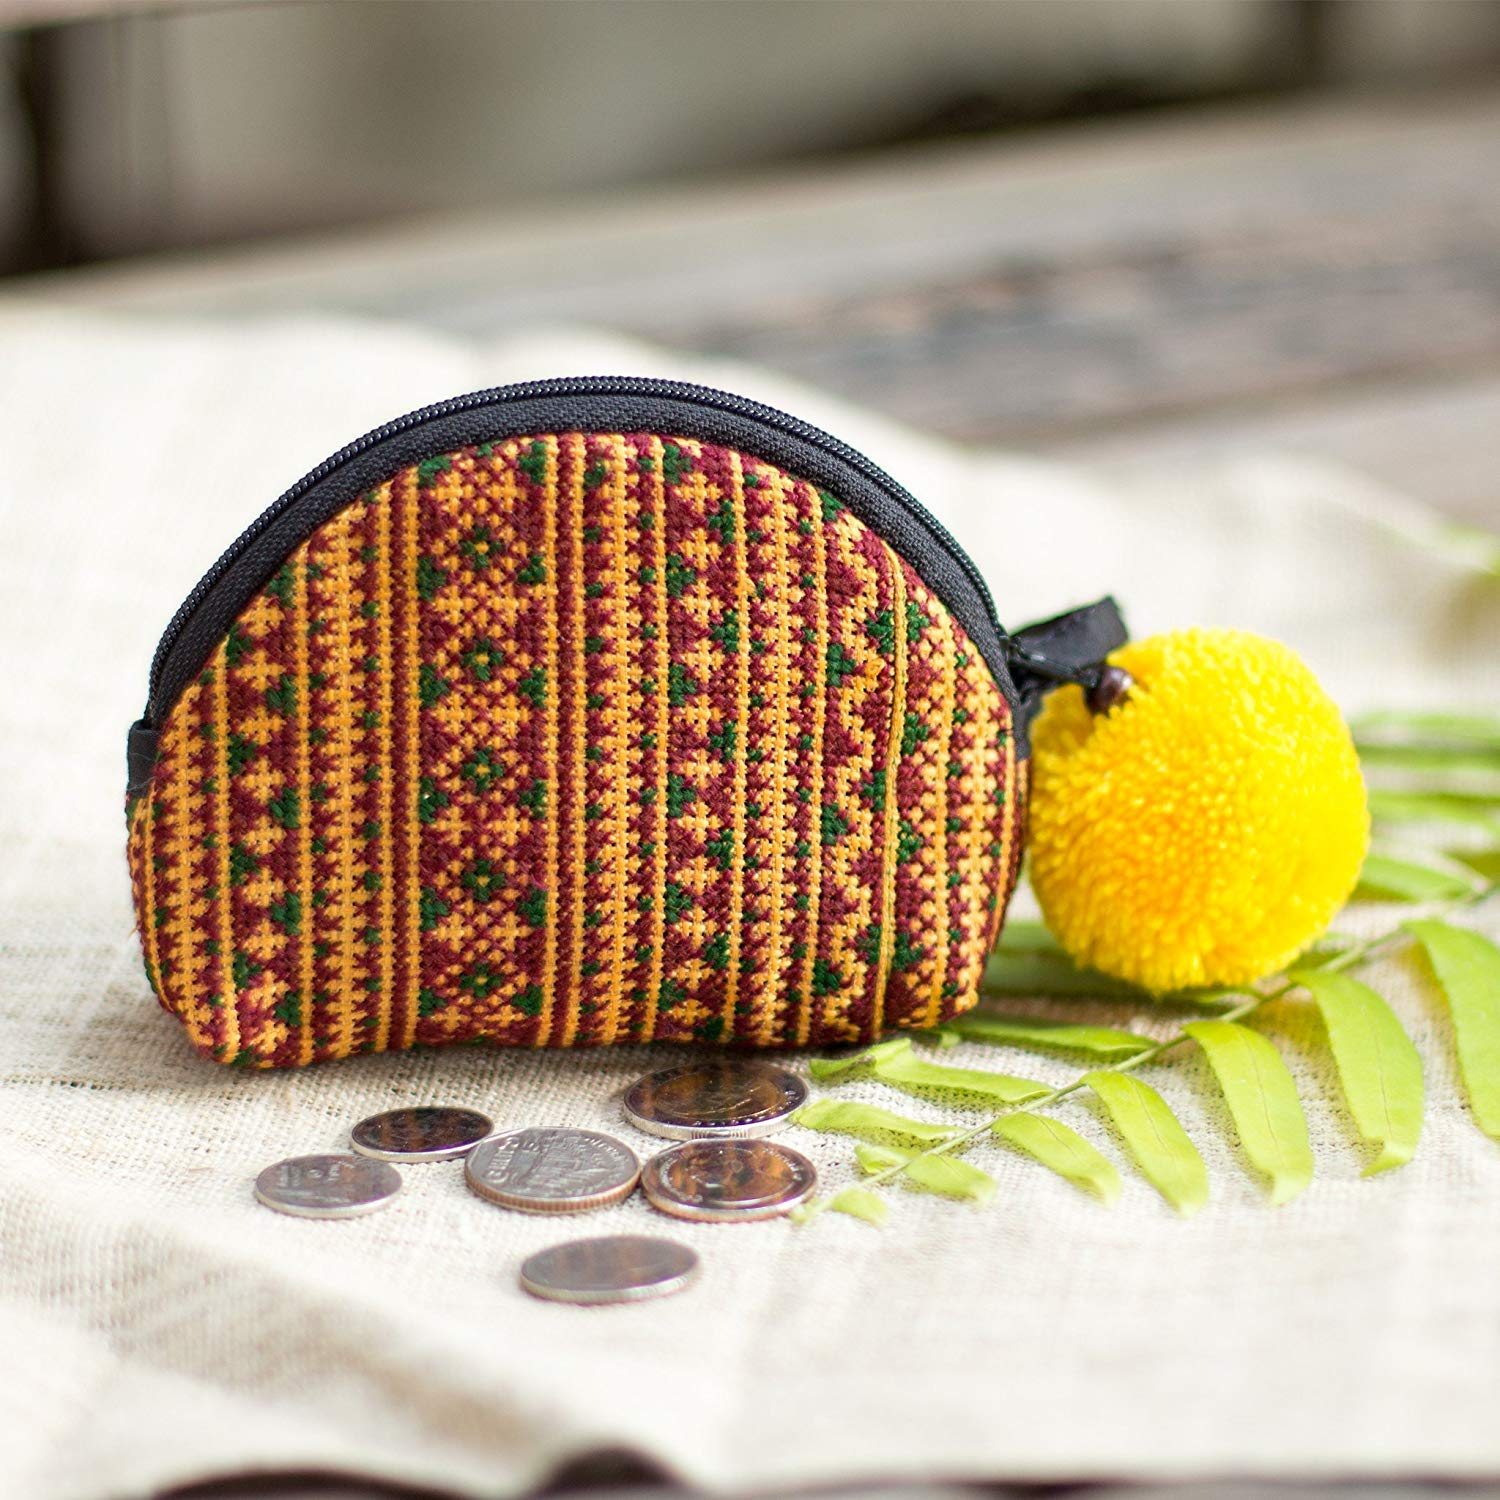 Changnoi One of a Kind Hill Tribe Hmong Embroidered Coin Purse, Mini Pouch for Women, Pom Pom Hippie Purse for Women in Brown